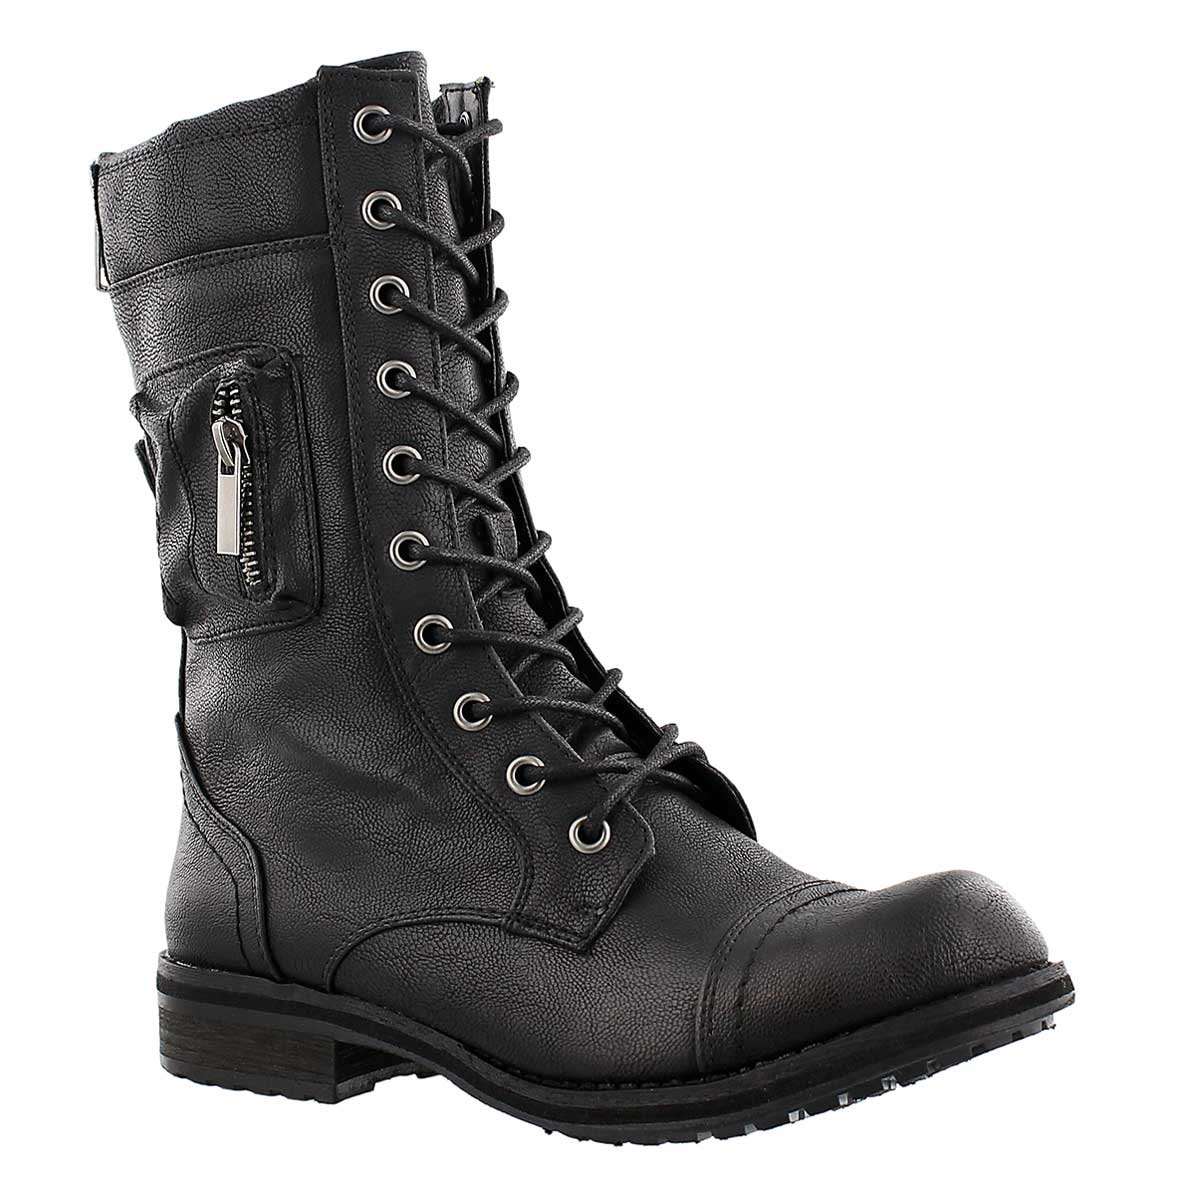 Lds Bliss II black lace up combat boot